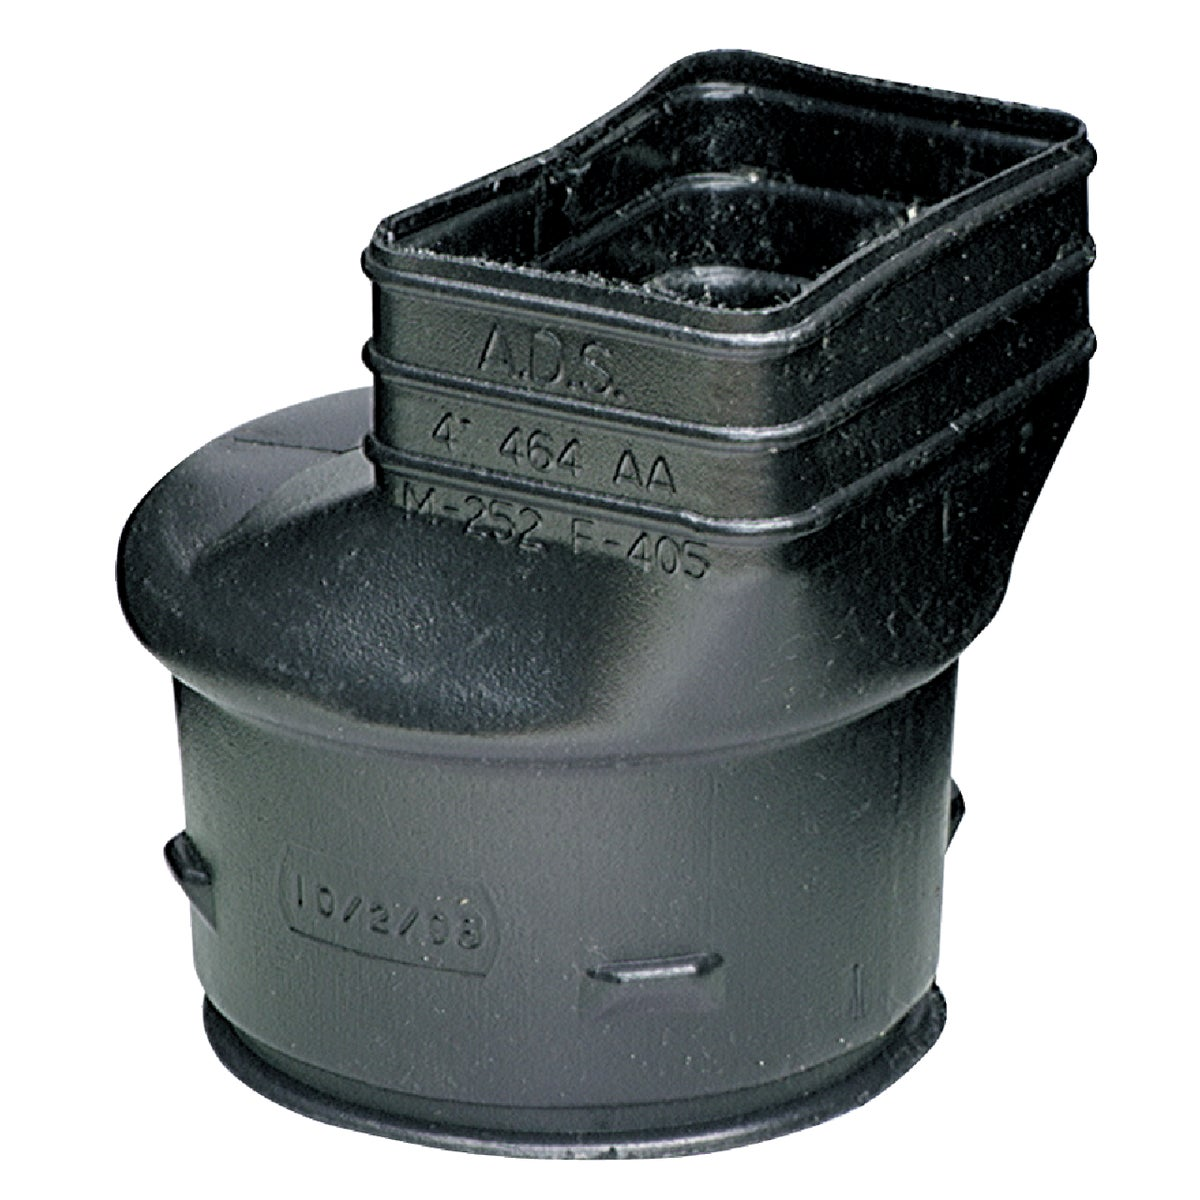 2X3 Downspout Adapter